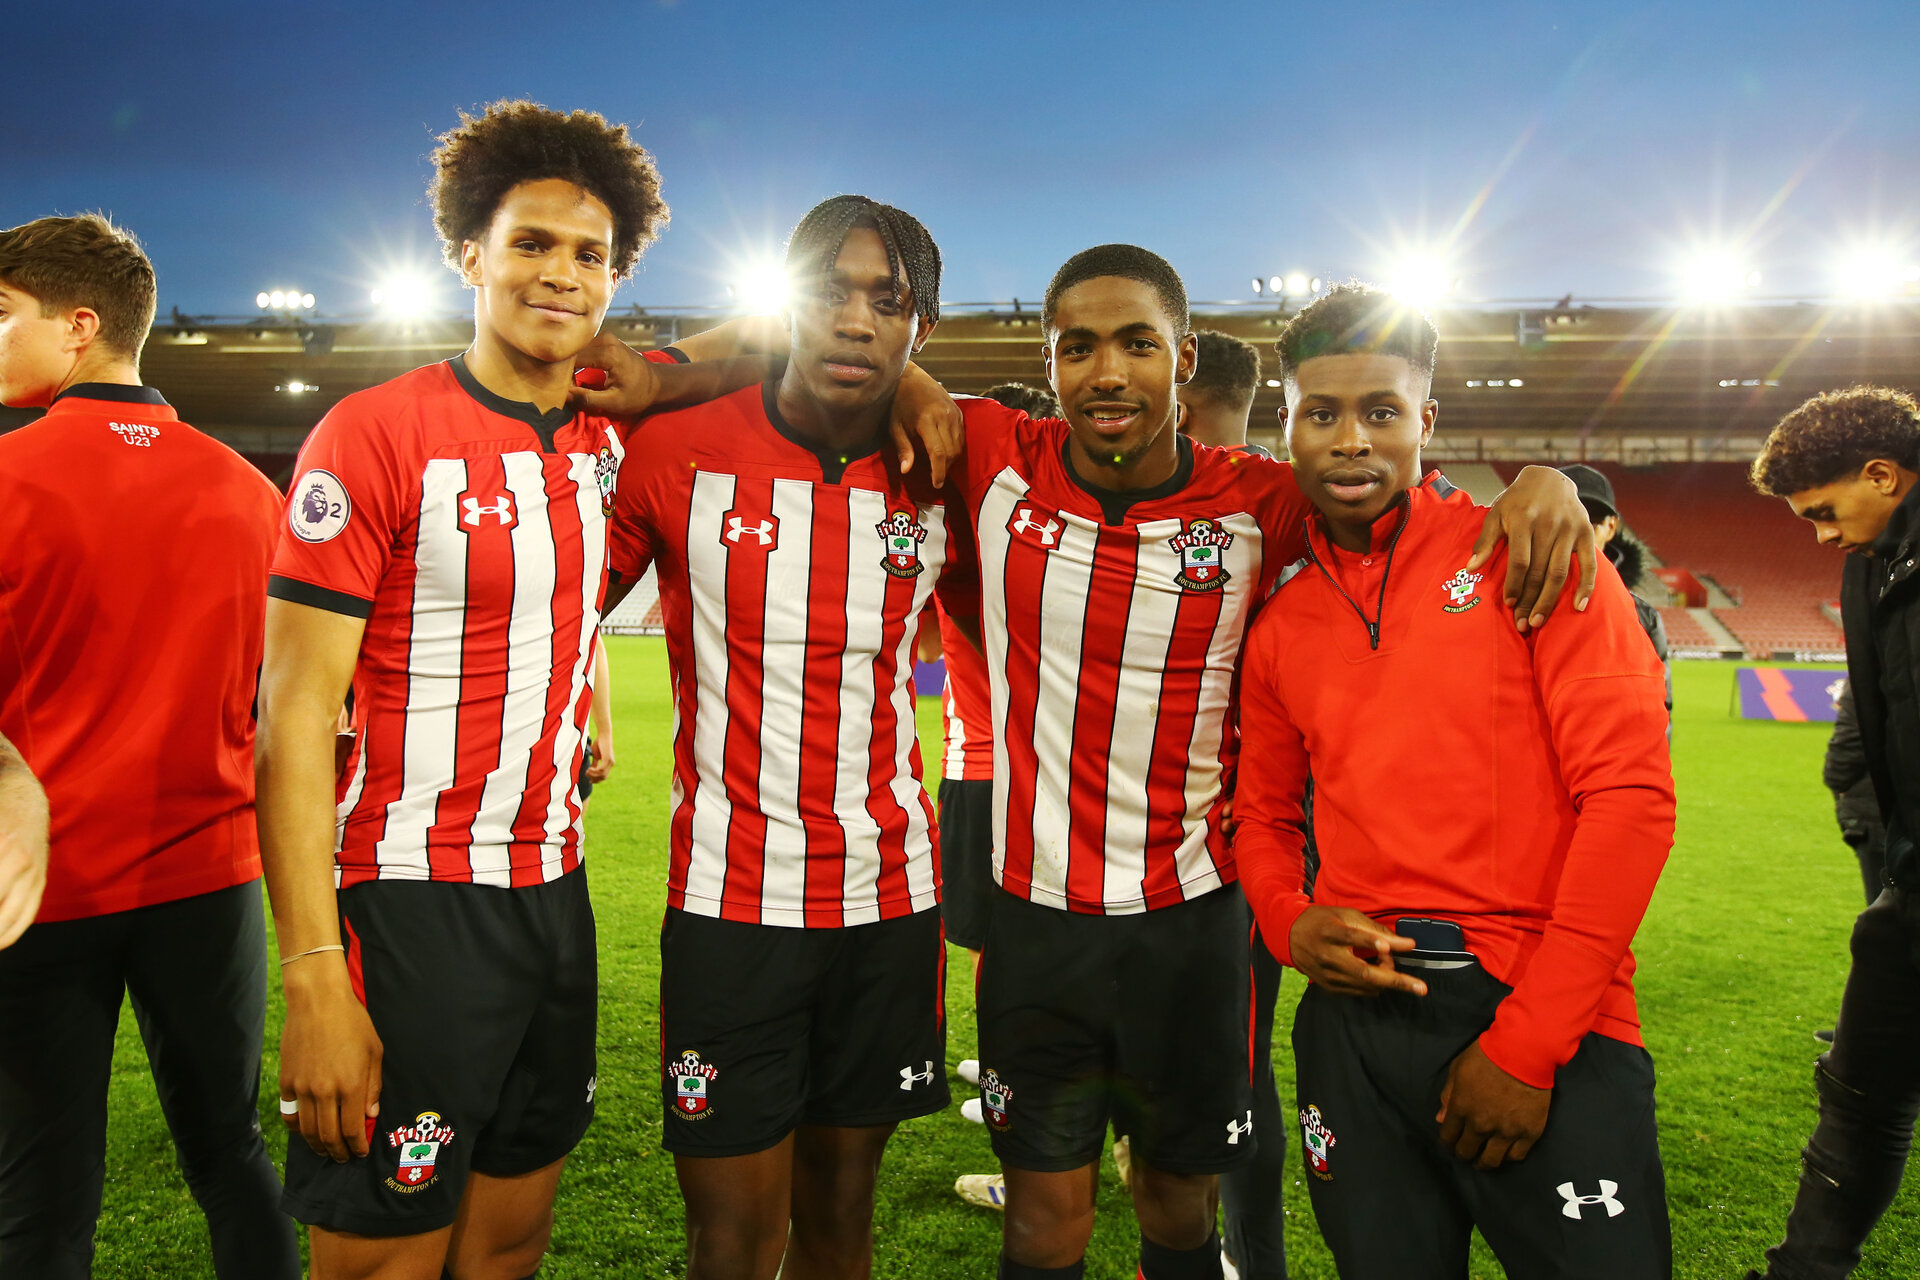 SOUTHAMPTON, ENGLAND - MAY 13: LtoR Oludare Olufunwa, Dan Nlundulu, Kayne Ramsay, Nathan Tella during the U23s PL2 Play off final between Southampton and Newcastle United pictured at St. Mary's Stadium on May 13, 2019 in Southampton, England. (Photo by James Bridle - Southampton FC/Southampton FC via Getty Images)